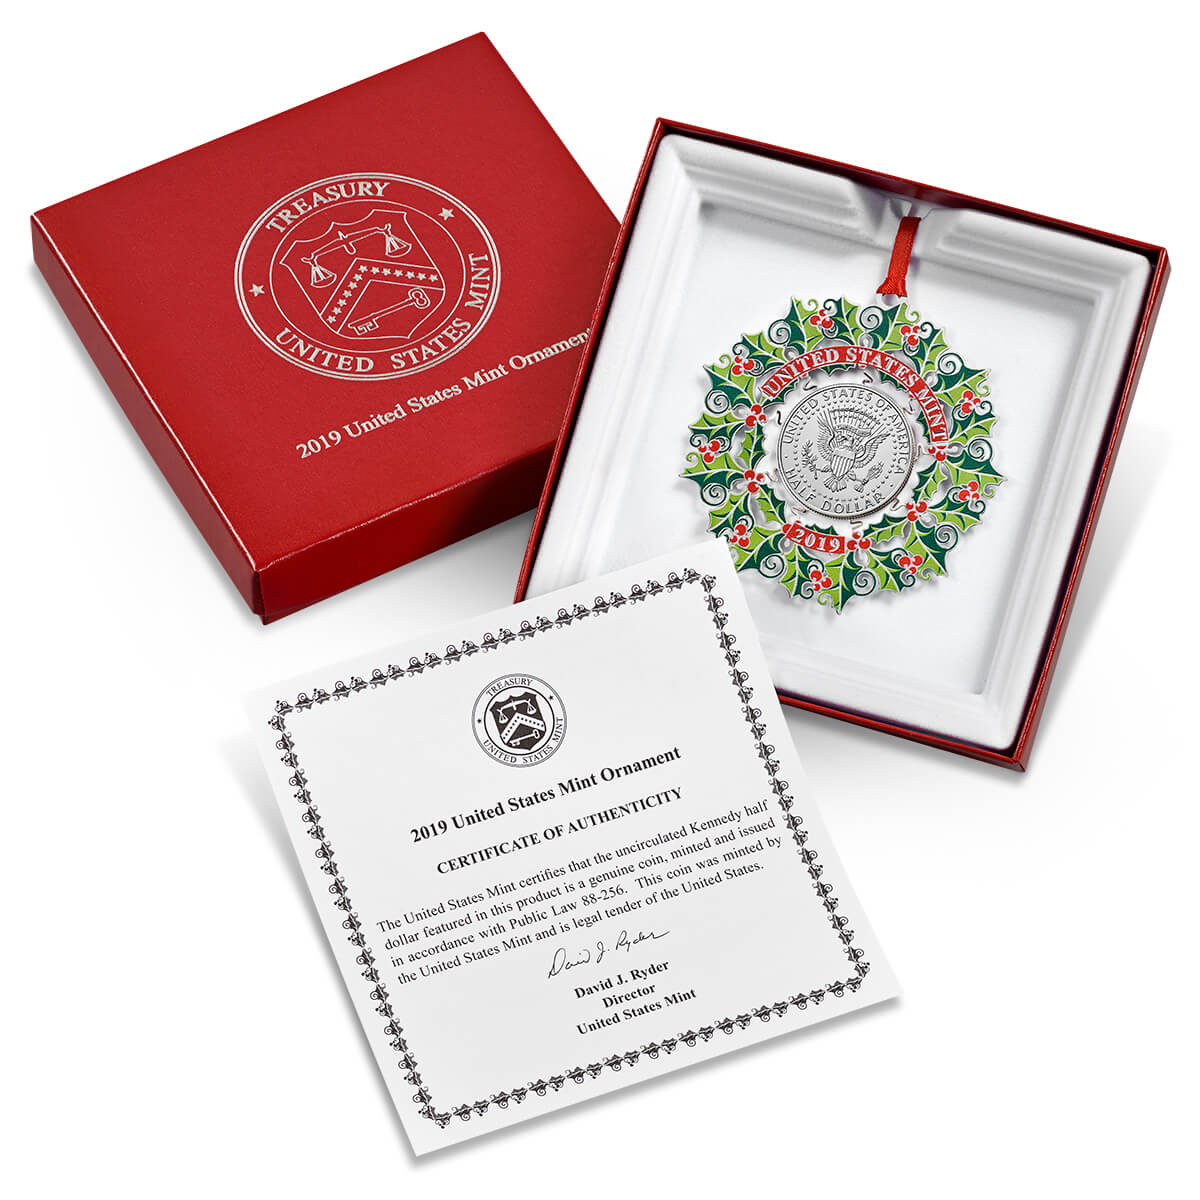 United States Mint Ornament Packaging